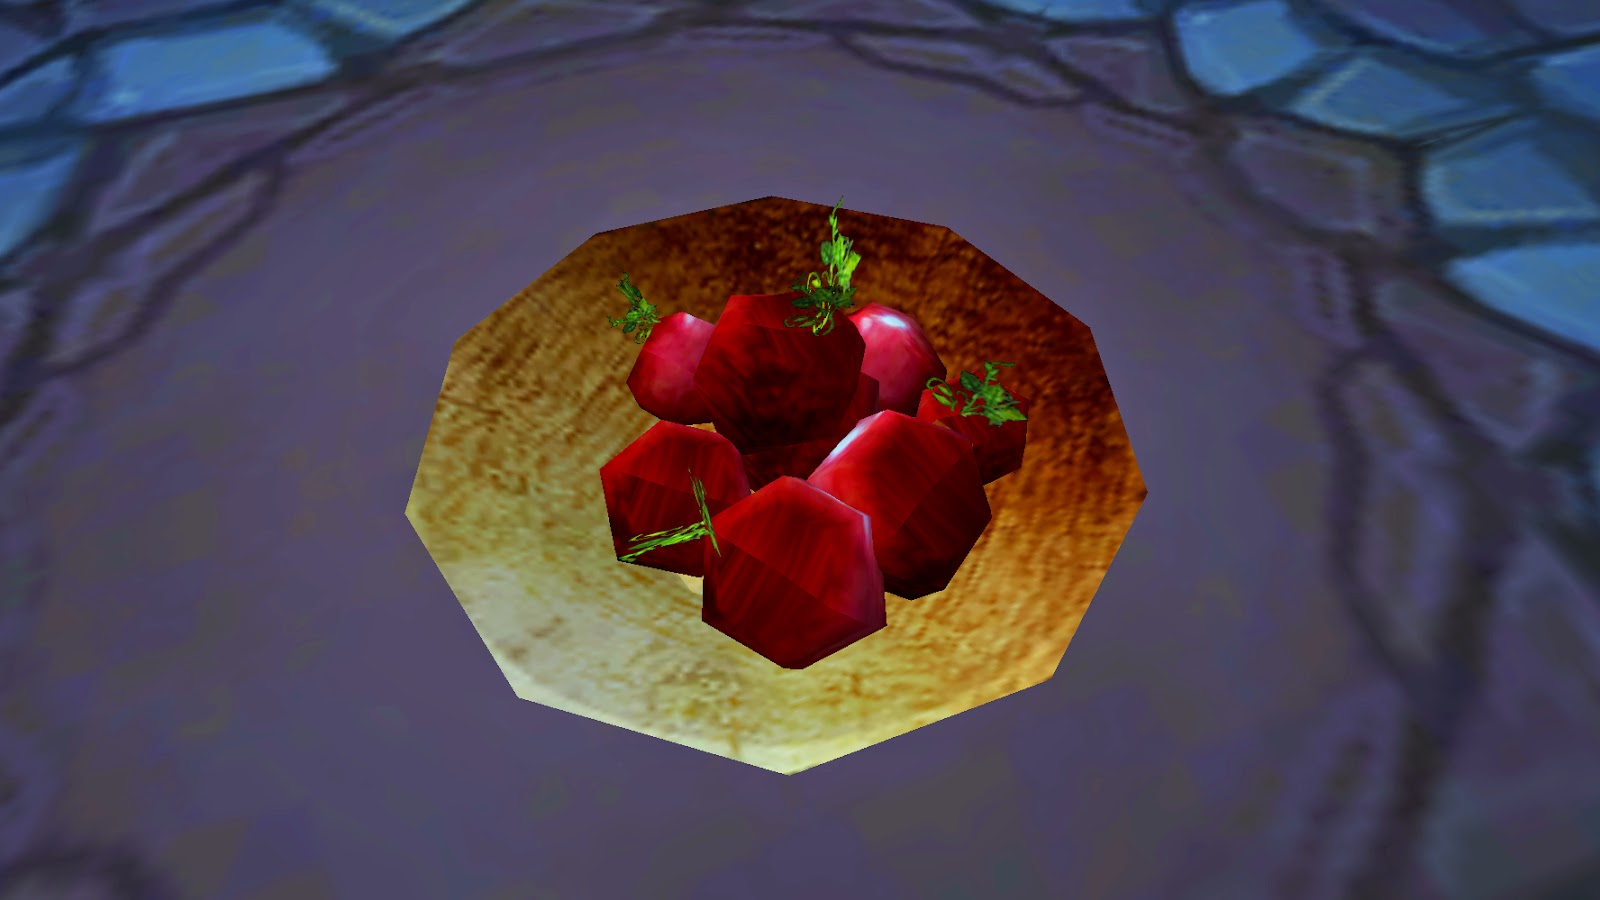 Dalaran Apples